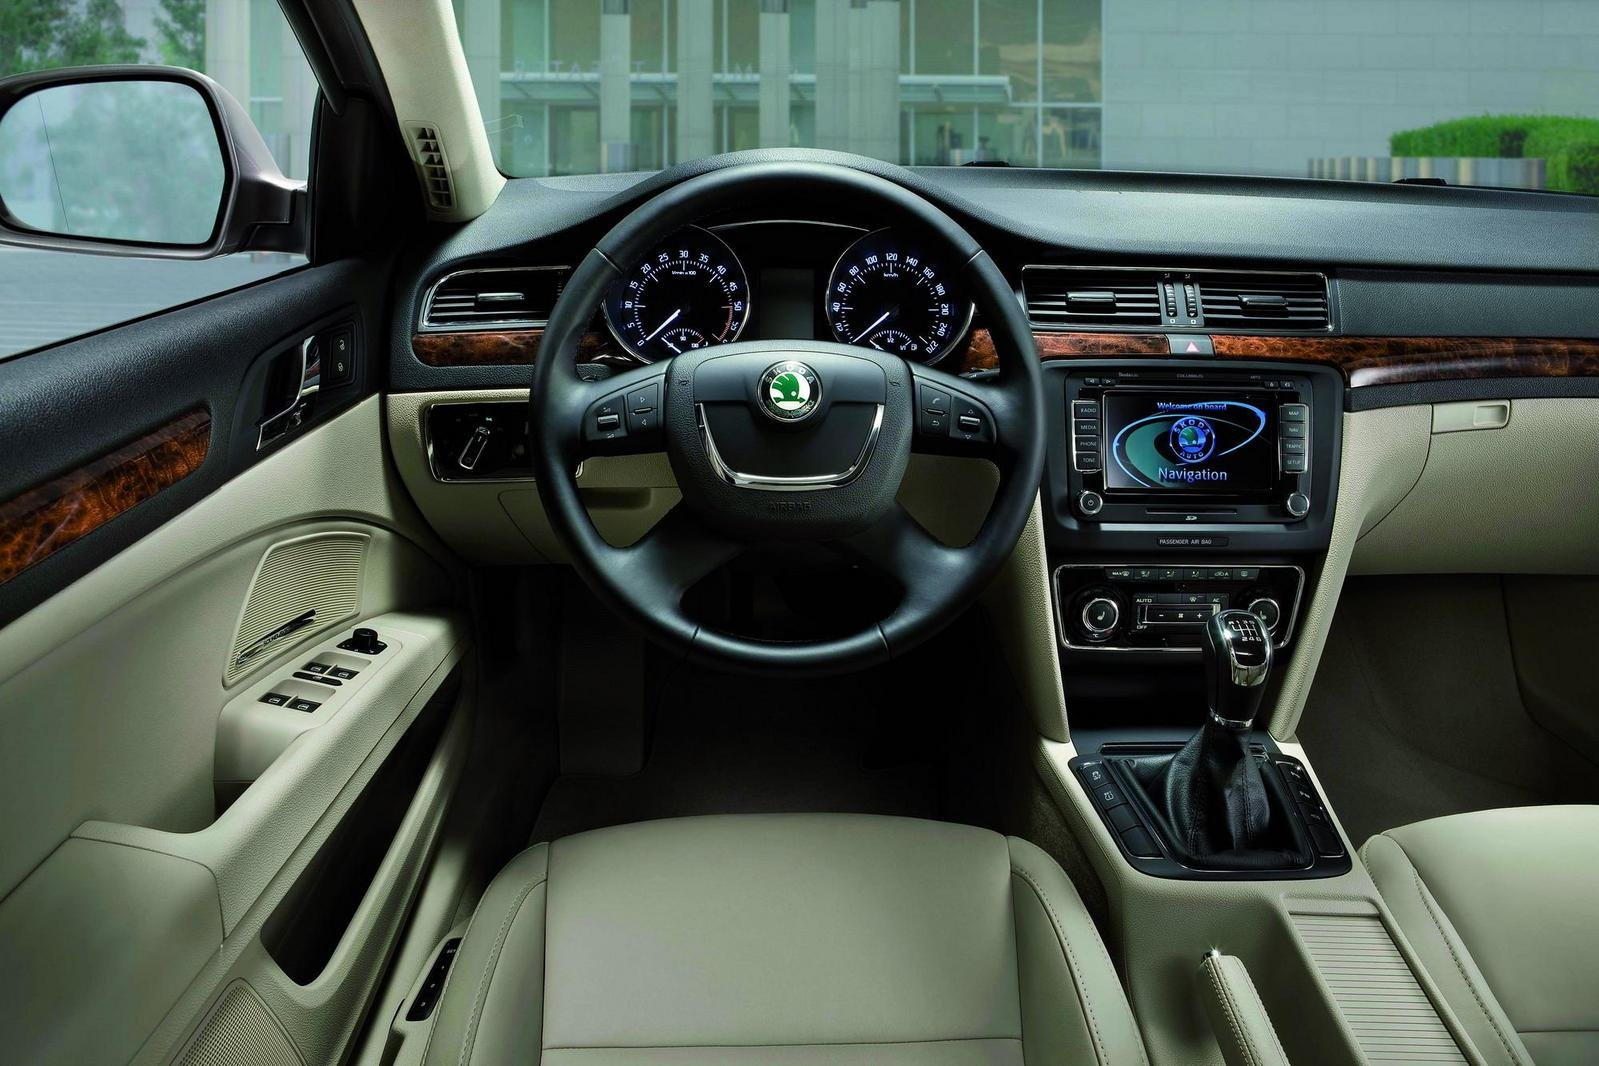 2010 skoda superb combi picture 320322 top speed picture to pin on pinterest thepinsta. Black Bedroom Furniture Sets. Home Design Ideas